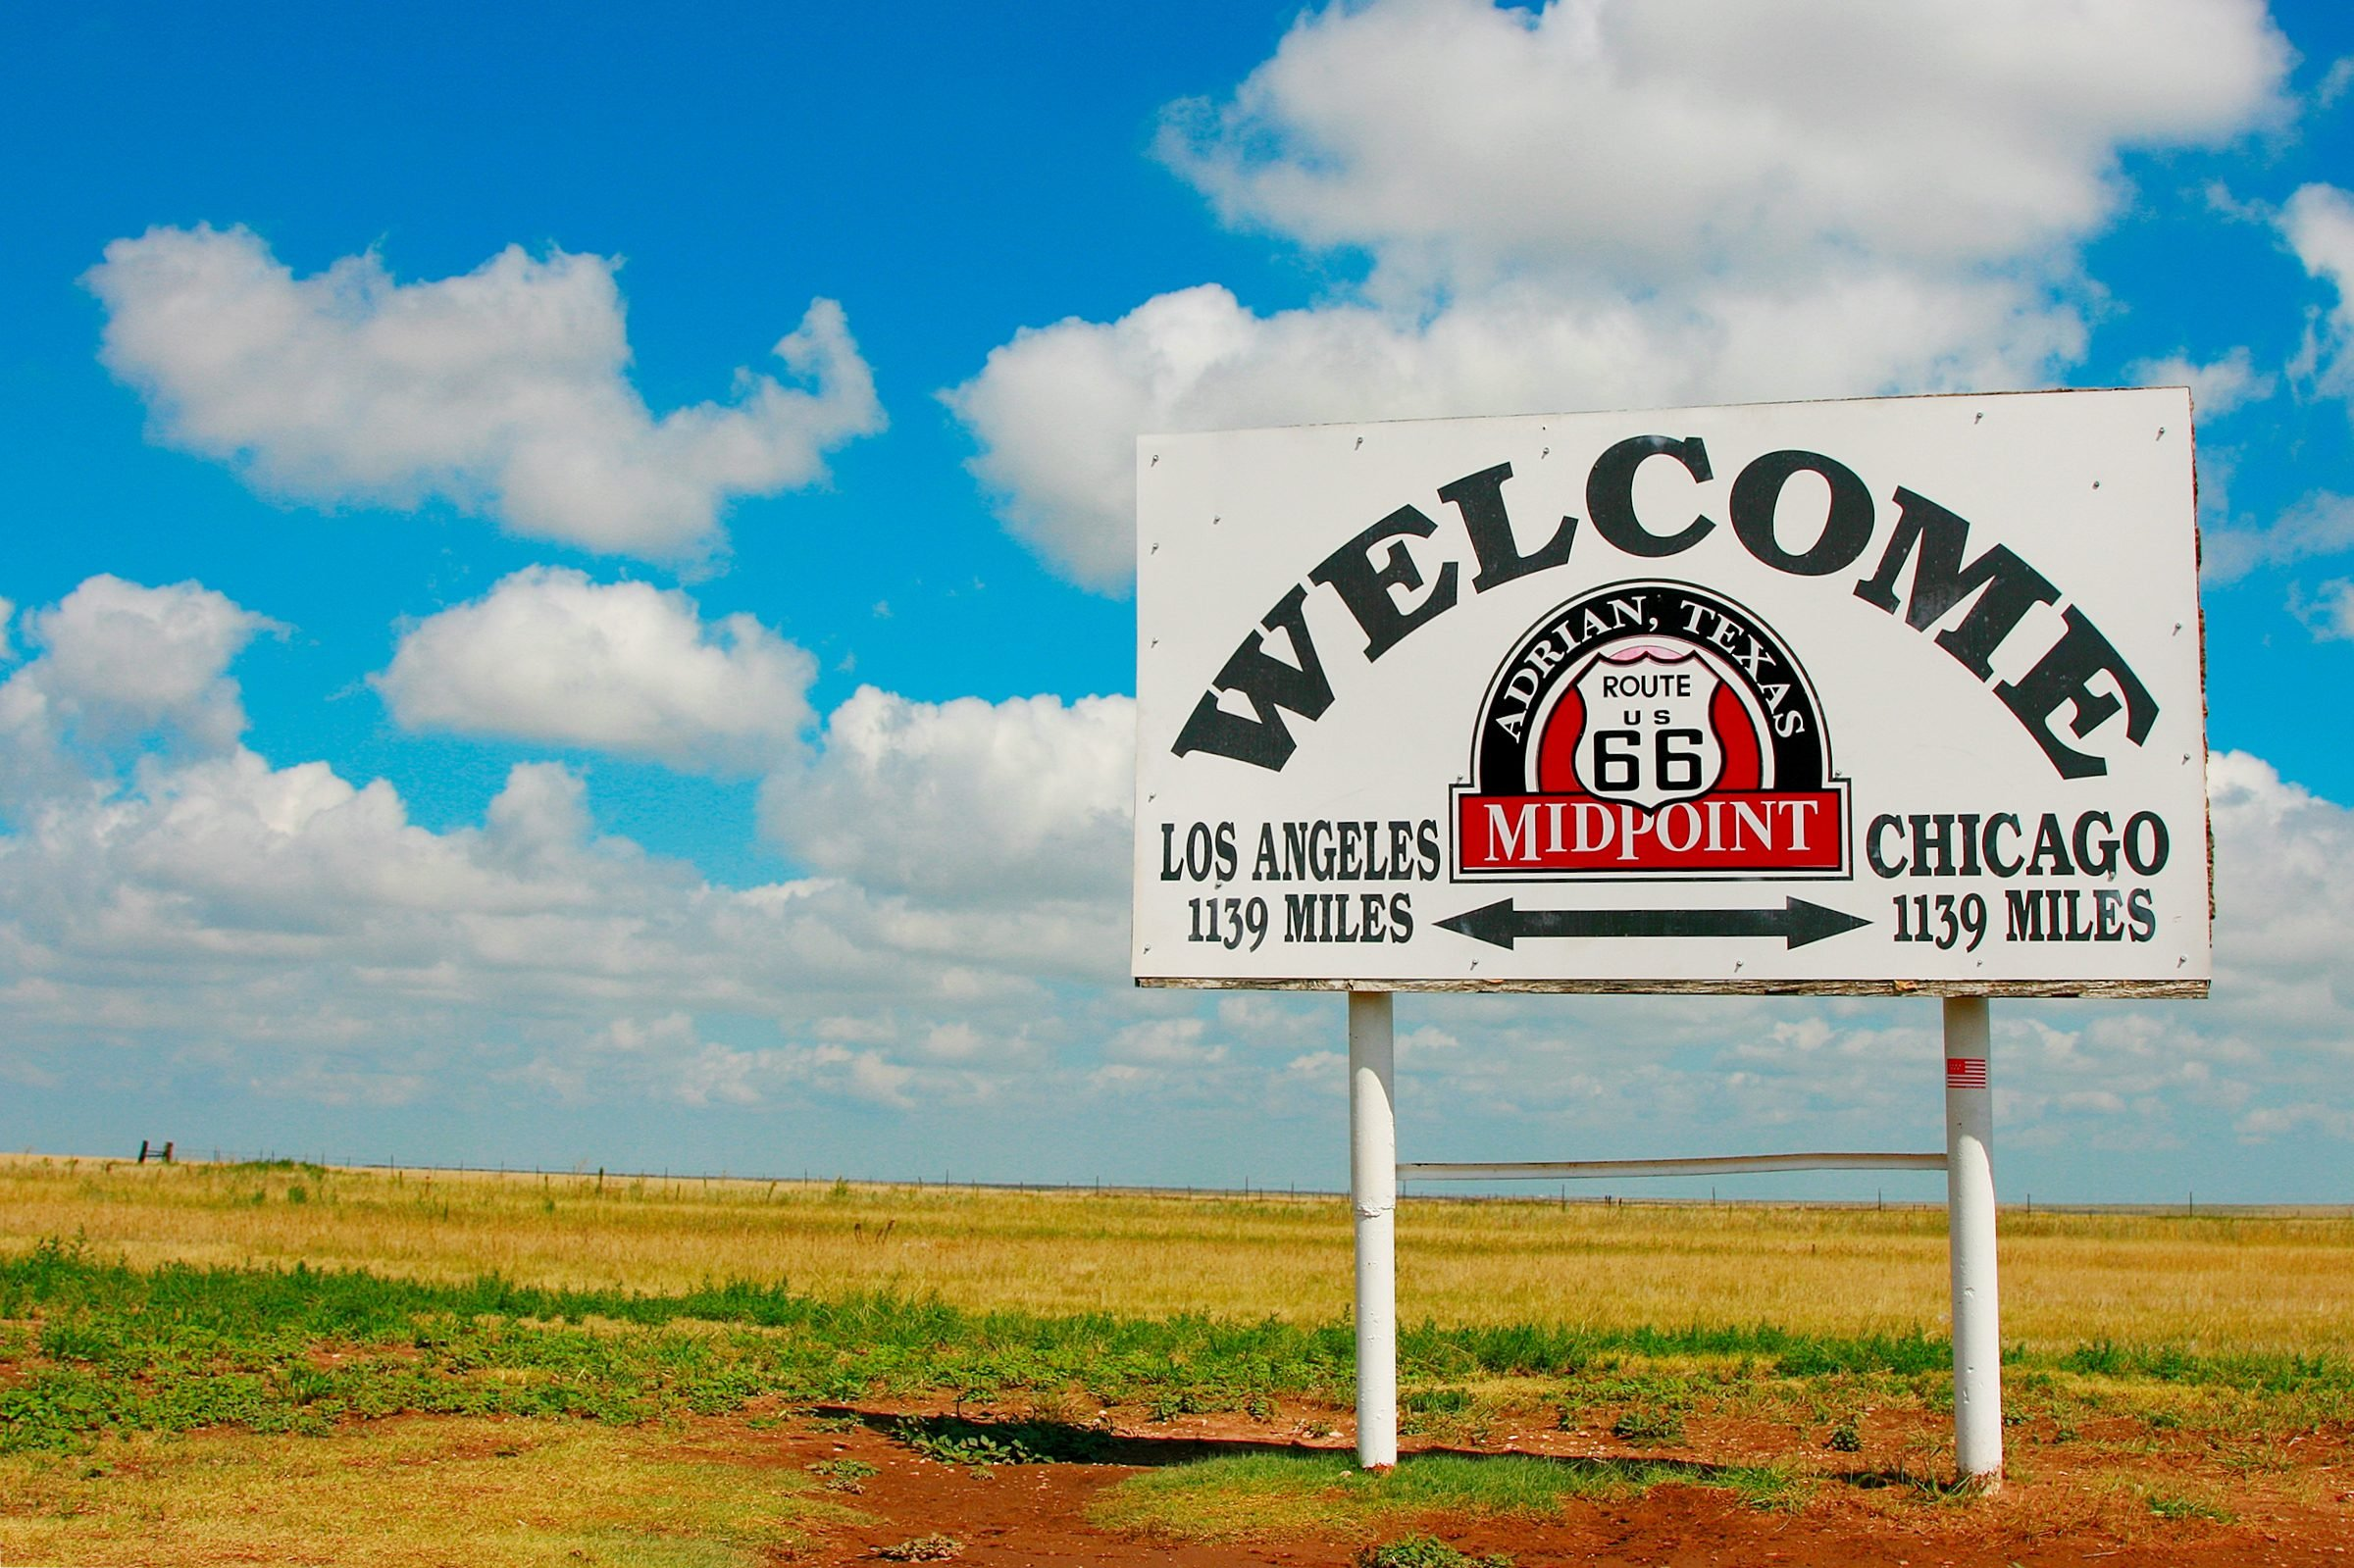 Route 66 Midpoint